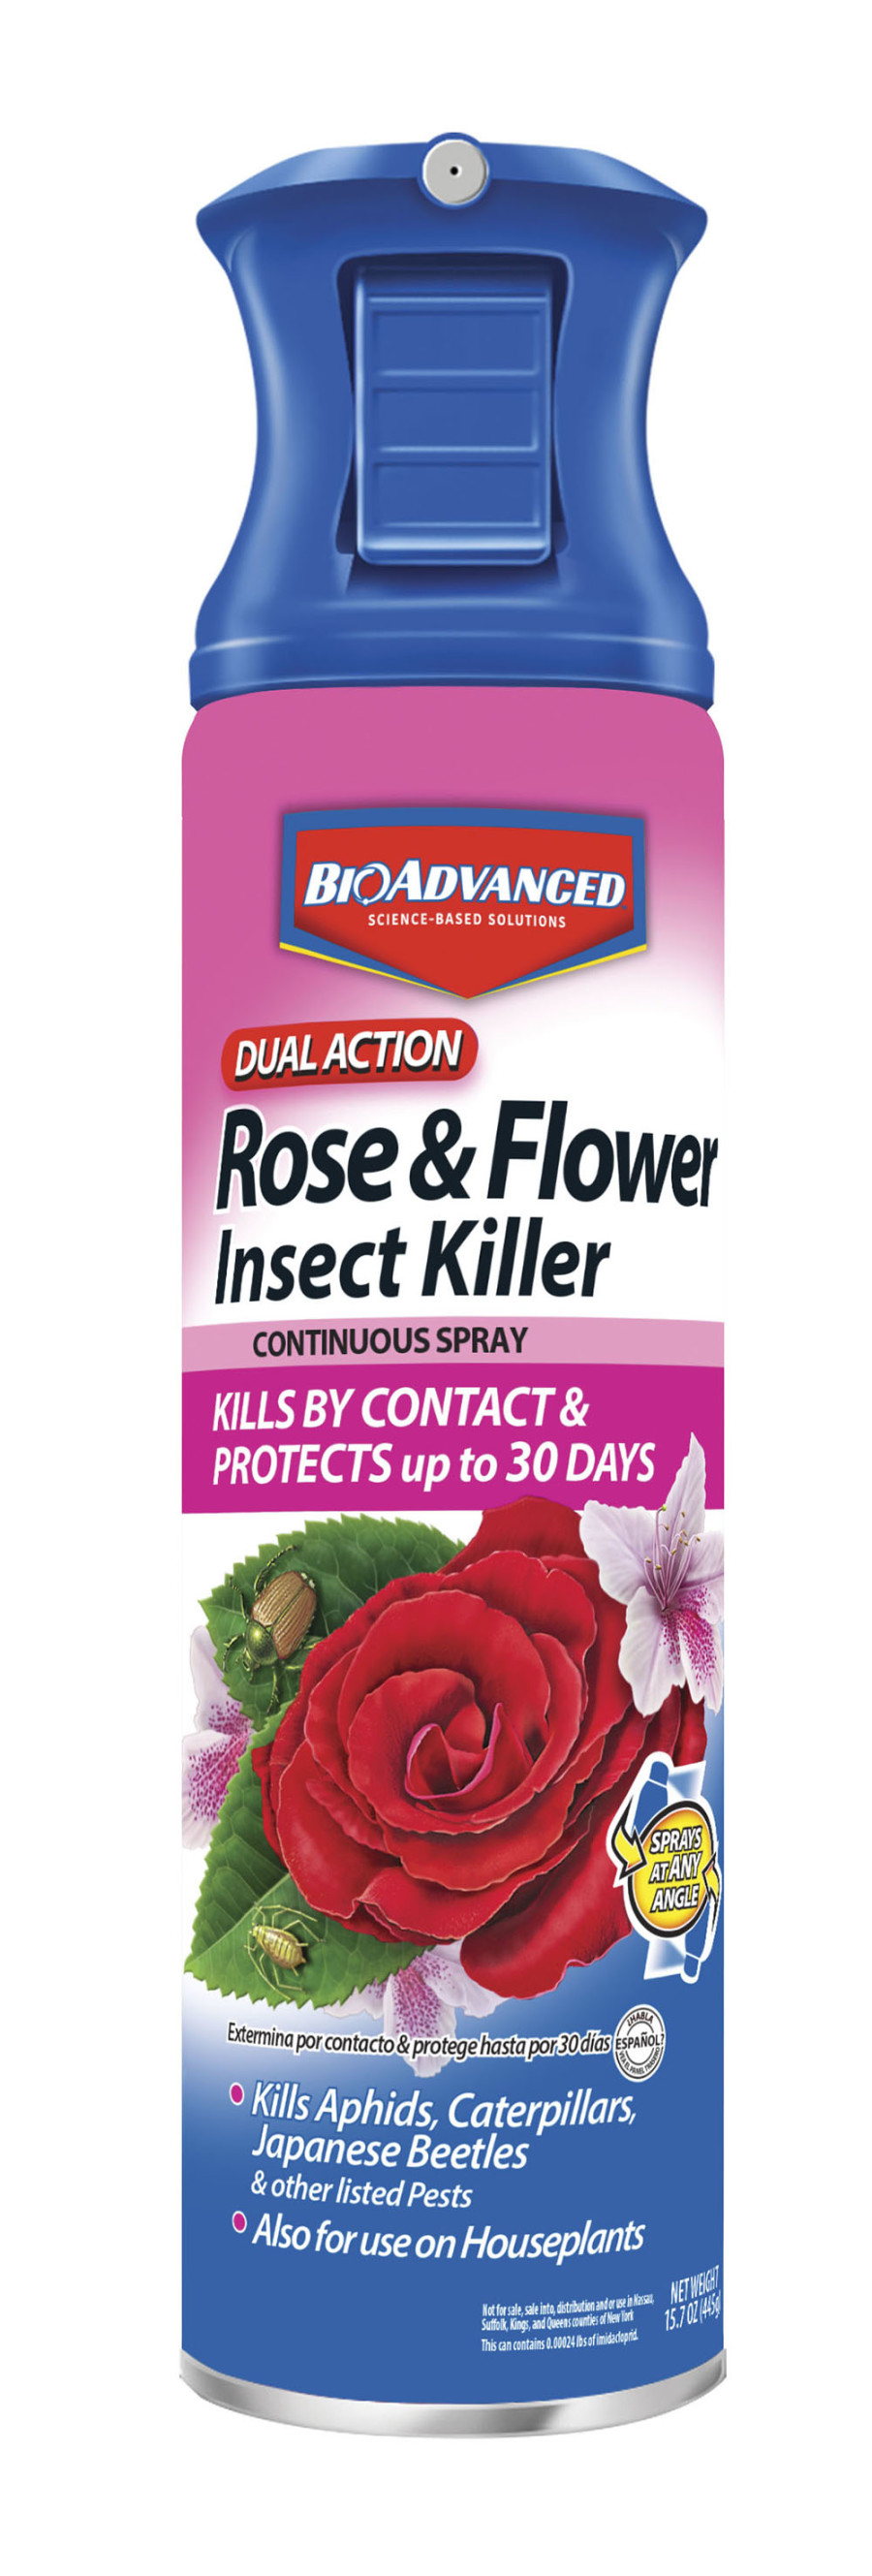 BioAdvanced Dual Action Rose & Flower Insect Killer Ready to Use Continuous Spray 12ea/15 oz